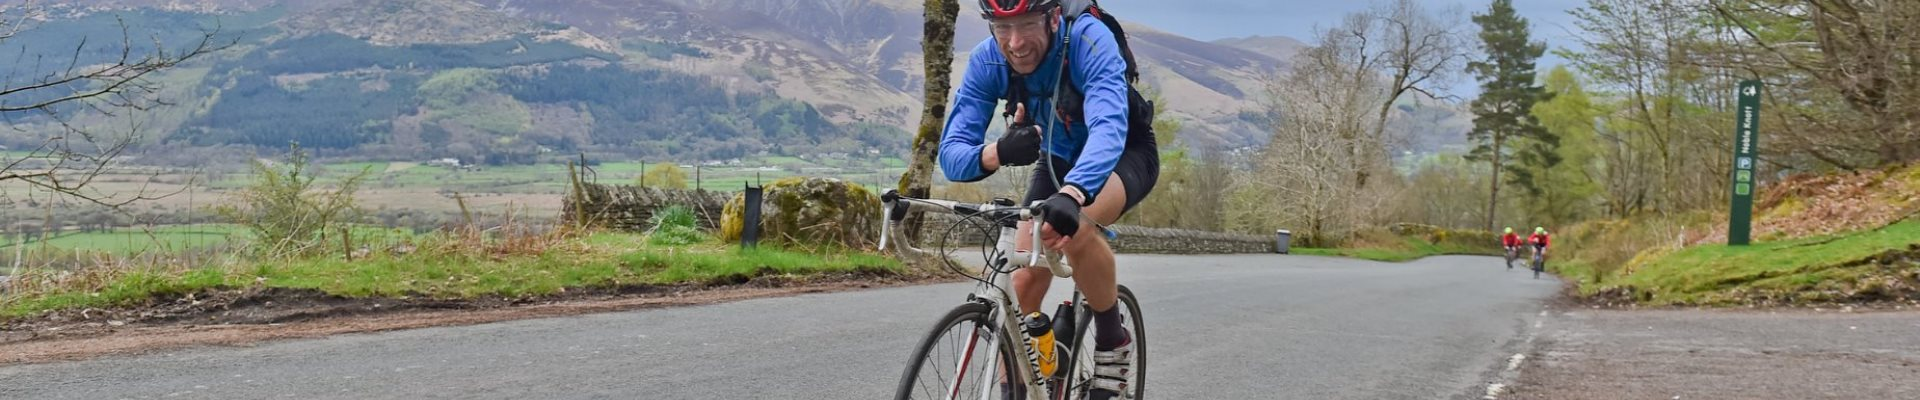 Lakeland Loop Cycle Sportive 2021